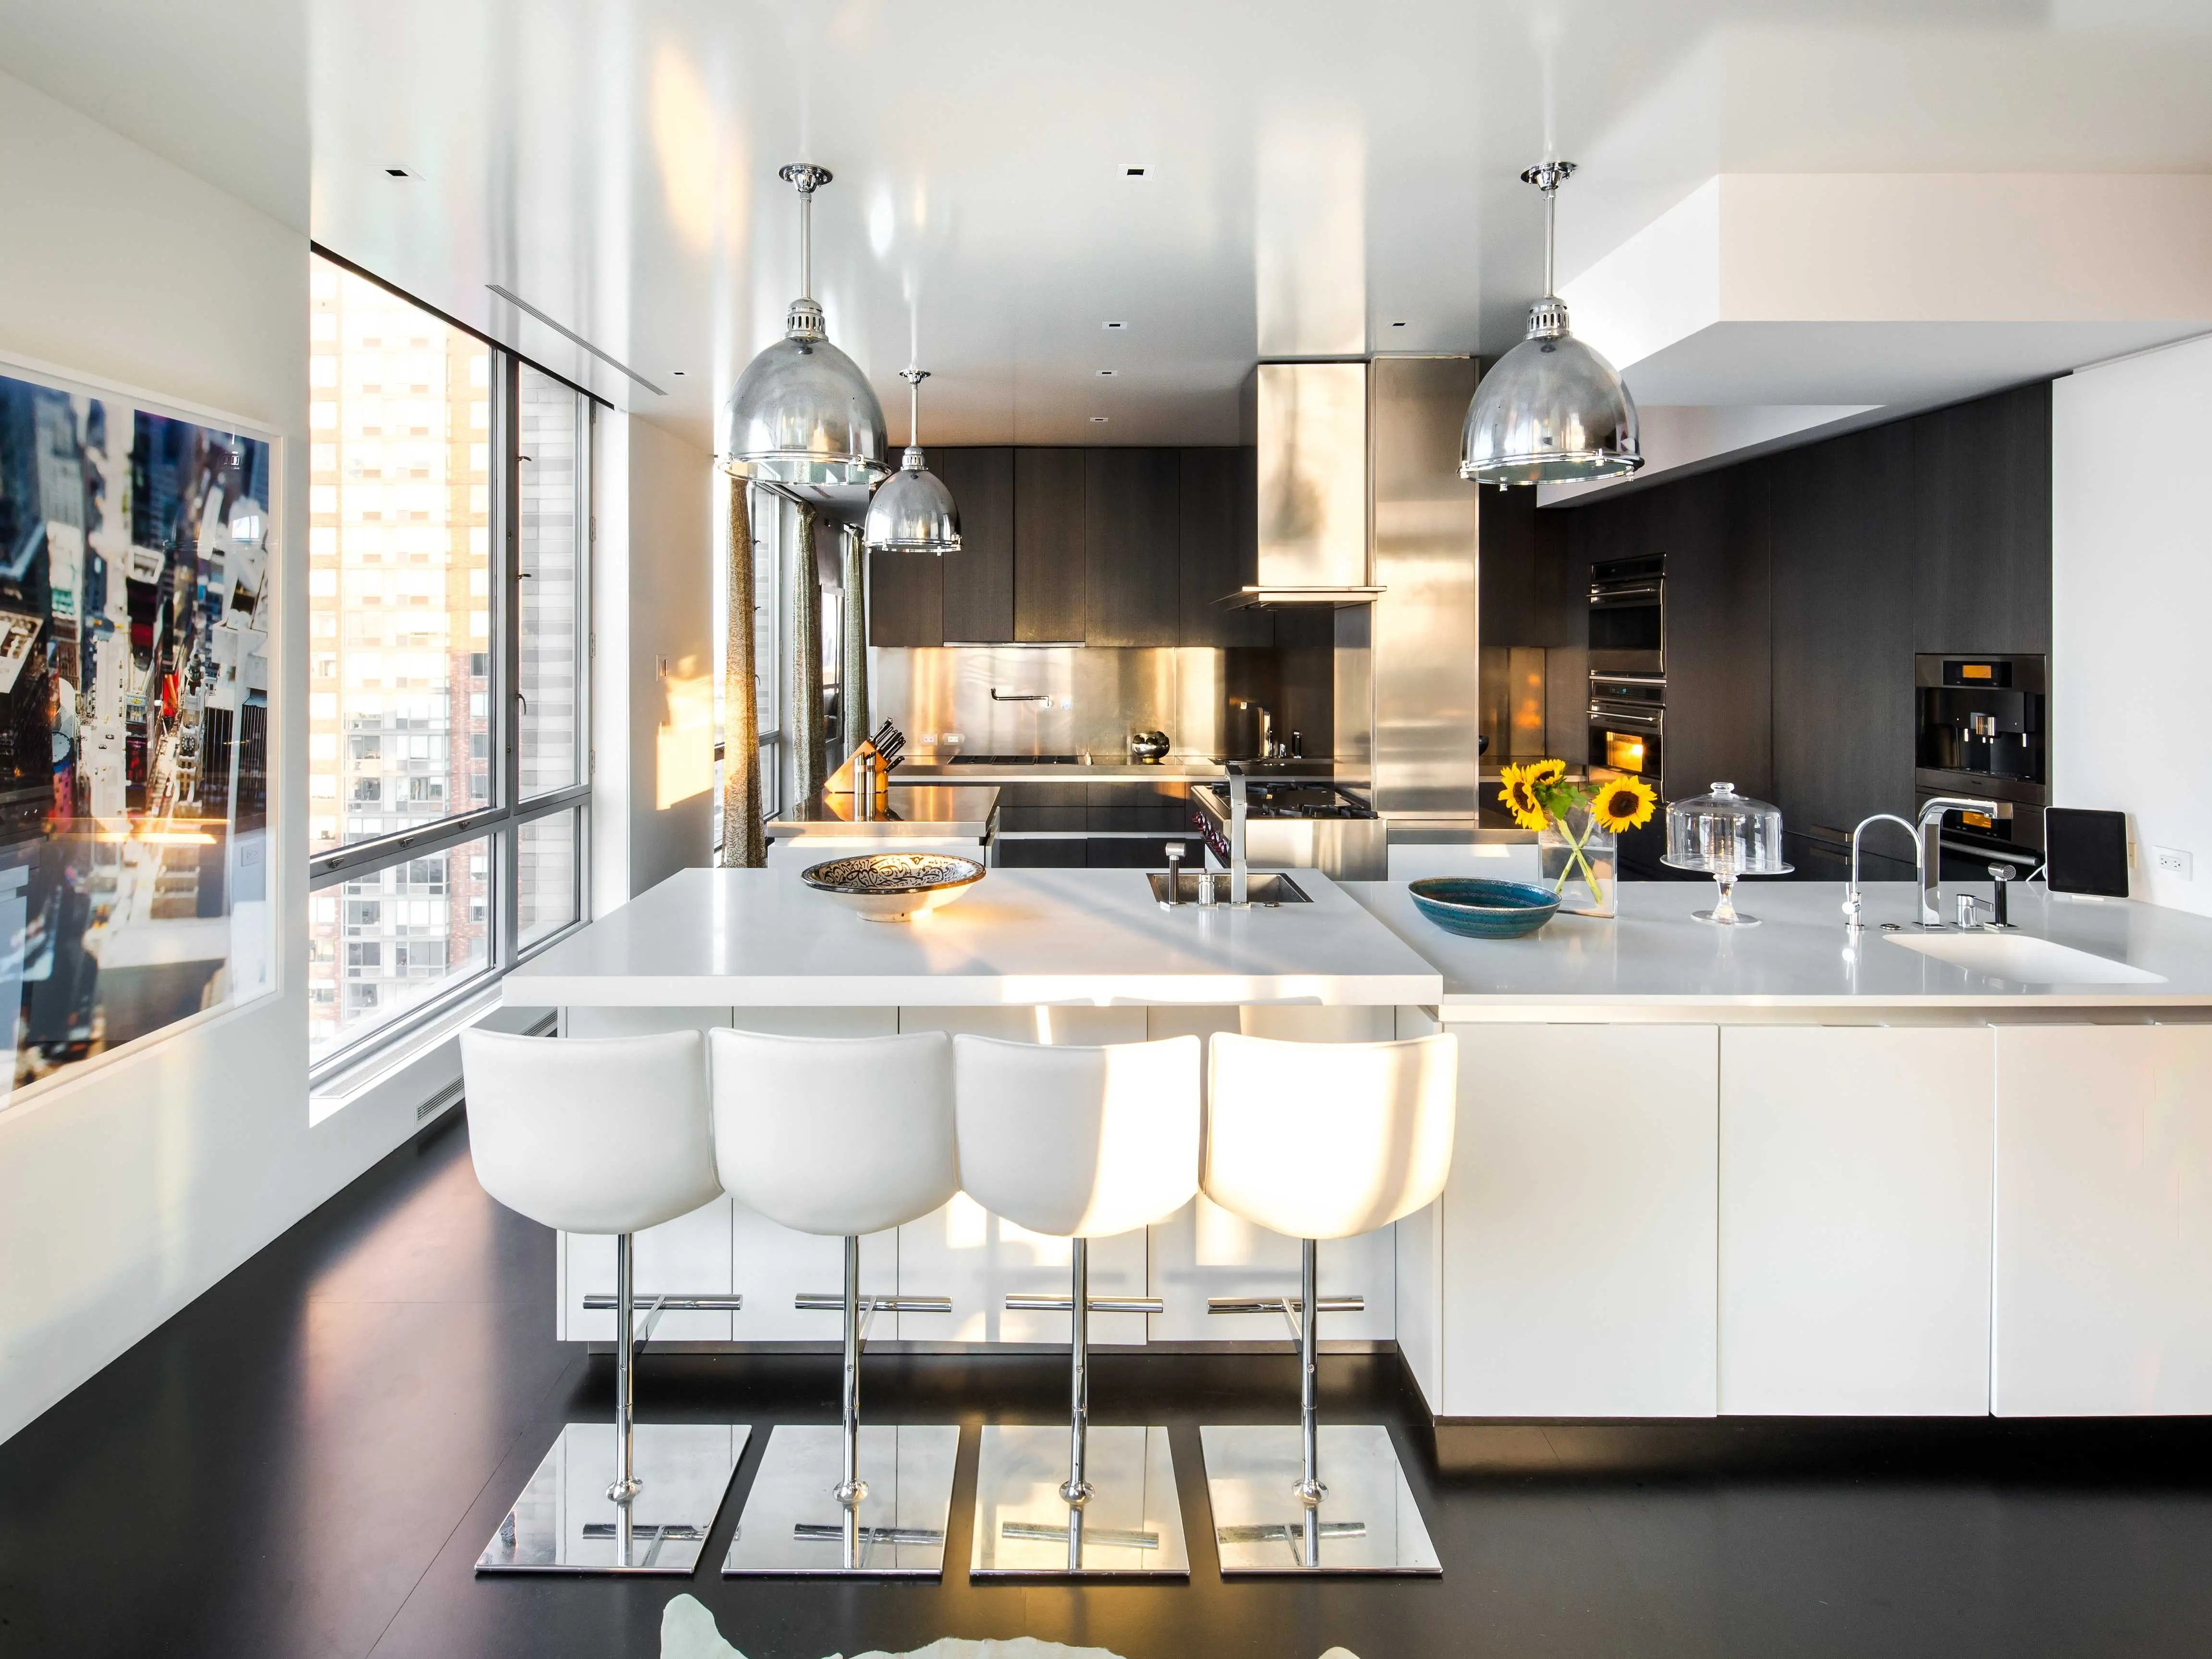 The immaculate main kitchen was designed by Boffi. There is a second kitchen located on the lower floor.